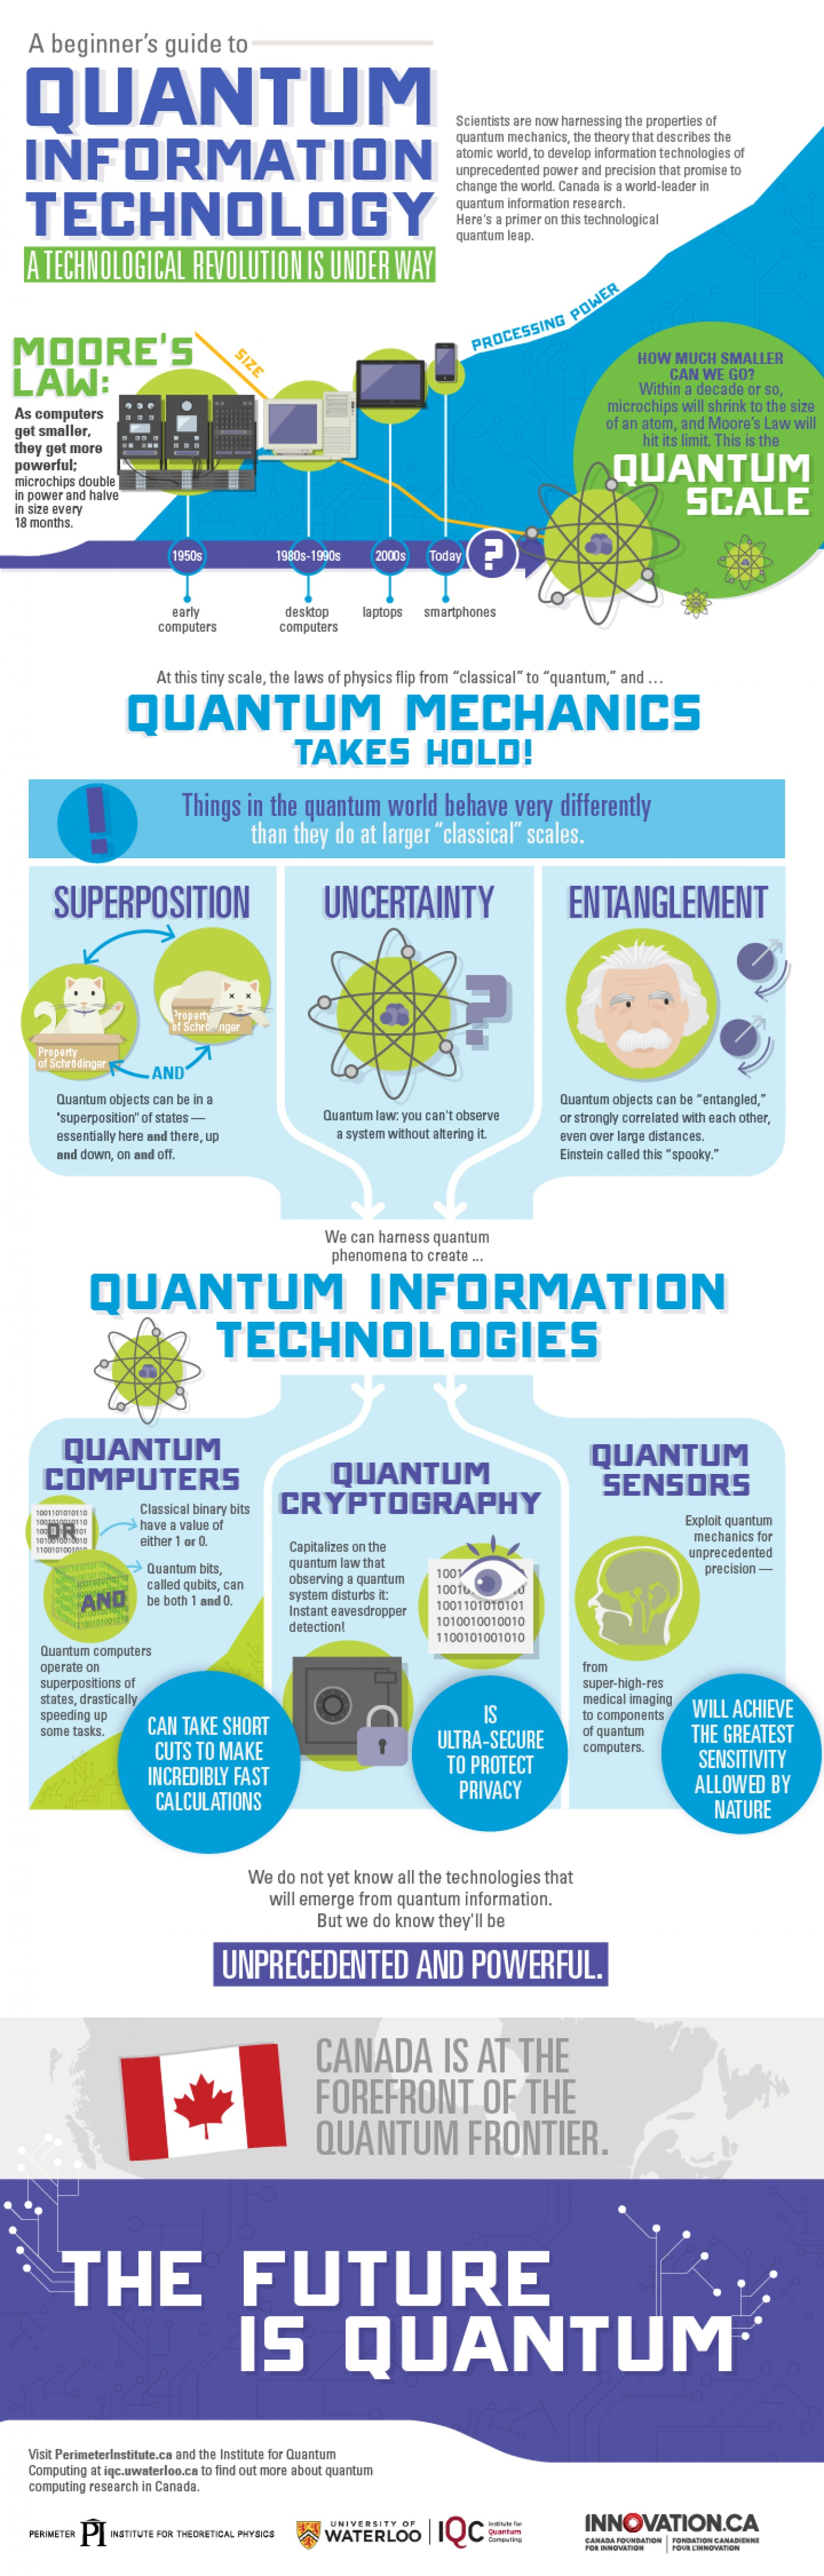 Technology Management Image: Infographic: A Beginner's Guide To Quantum Information